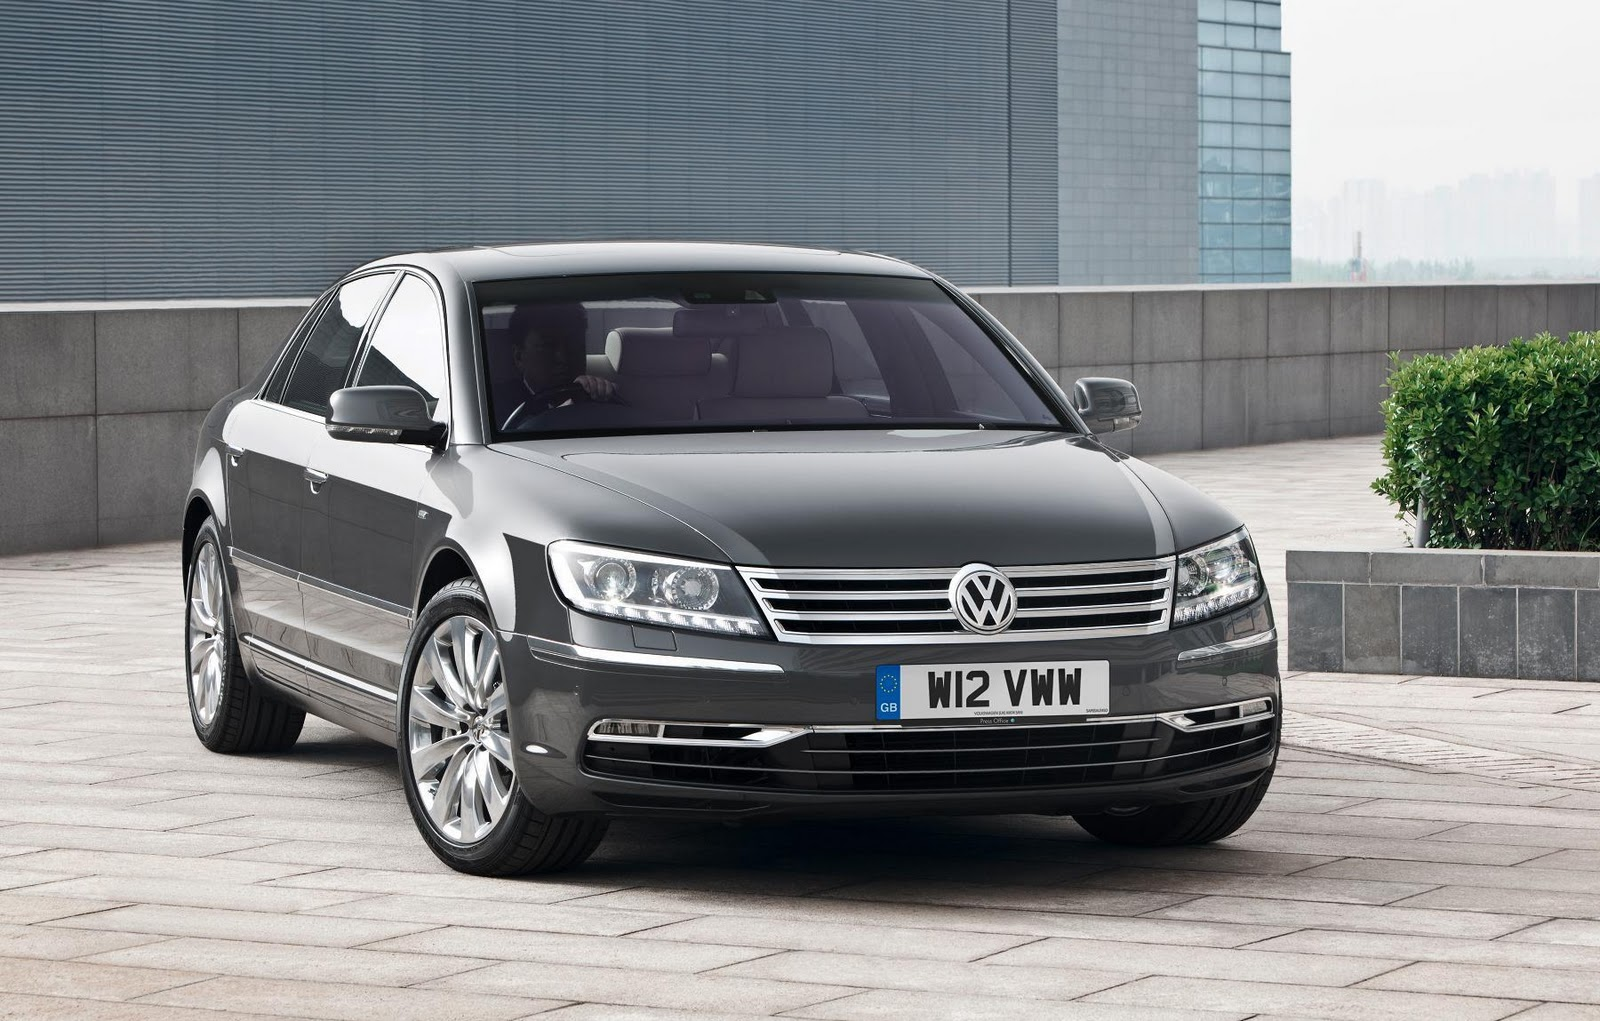 volkswagen phaeton 6 0 w12 photos and comments. Black Bedroom Furniture Sets. Home Design Ideas